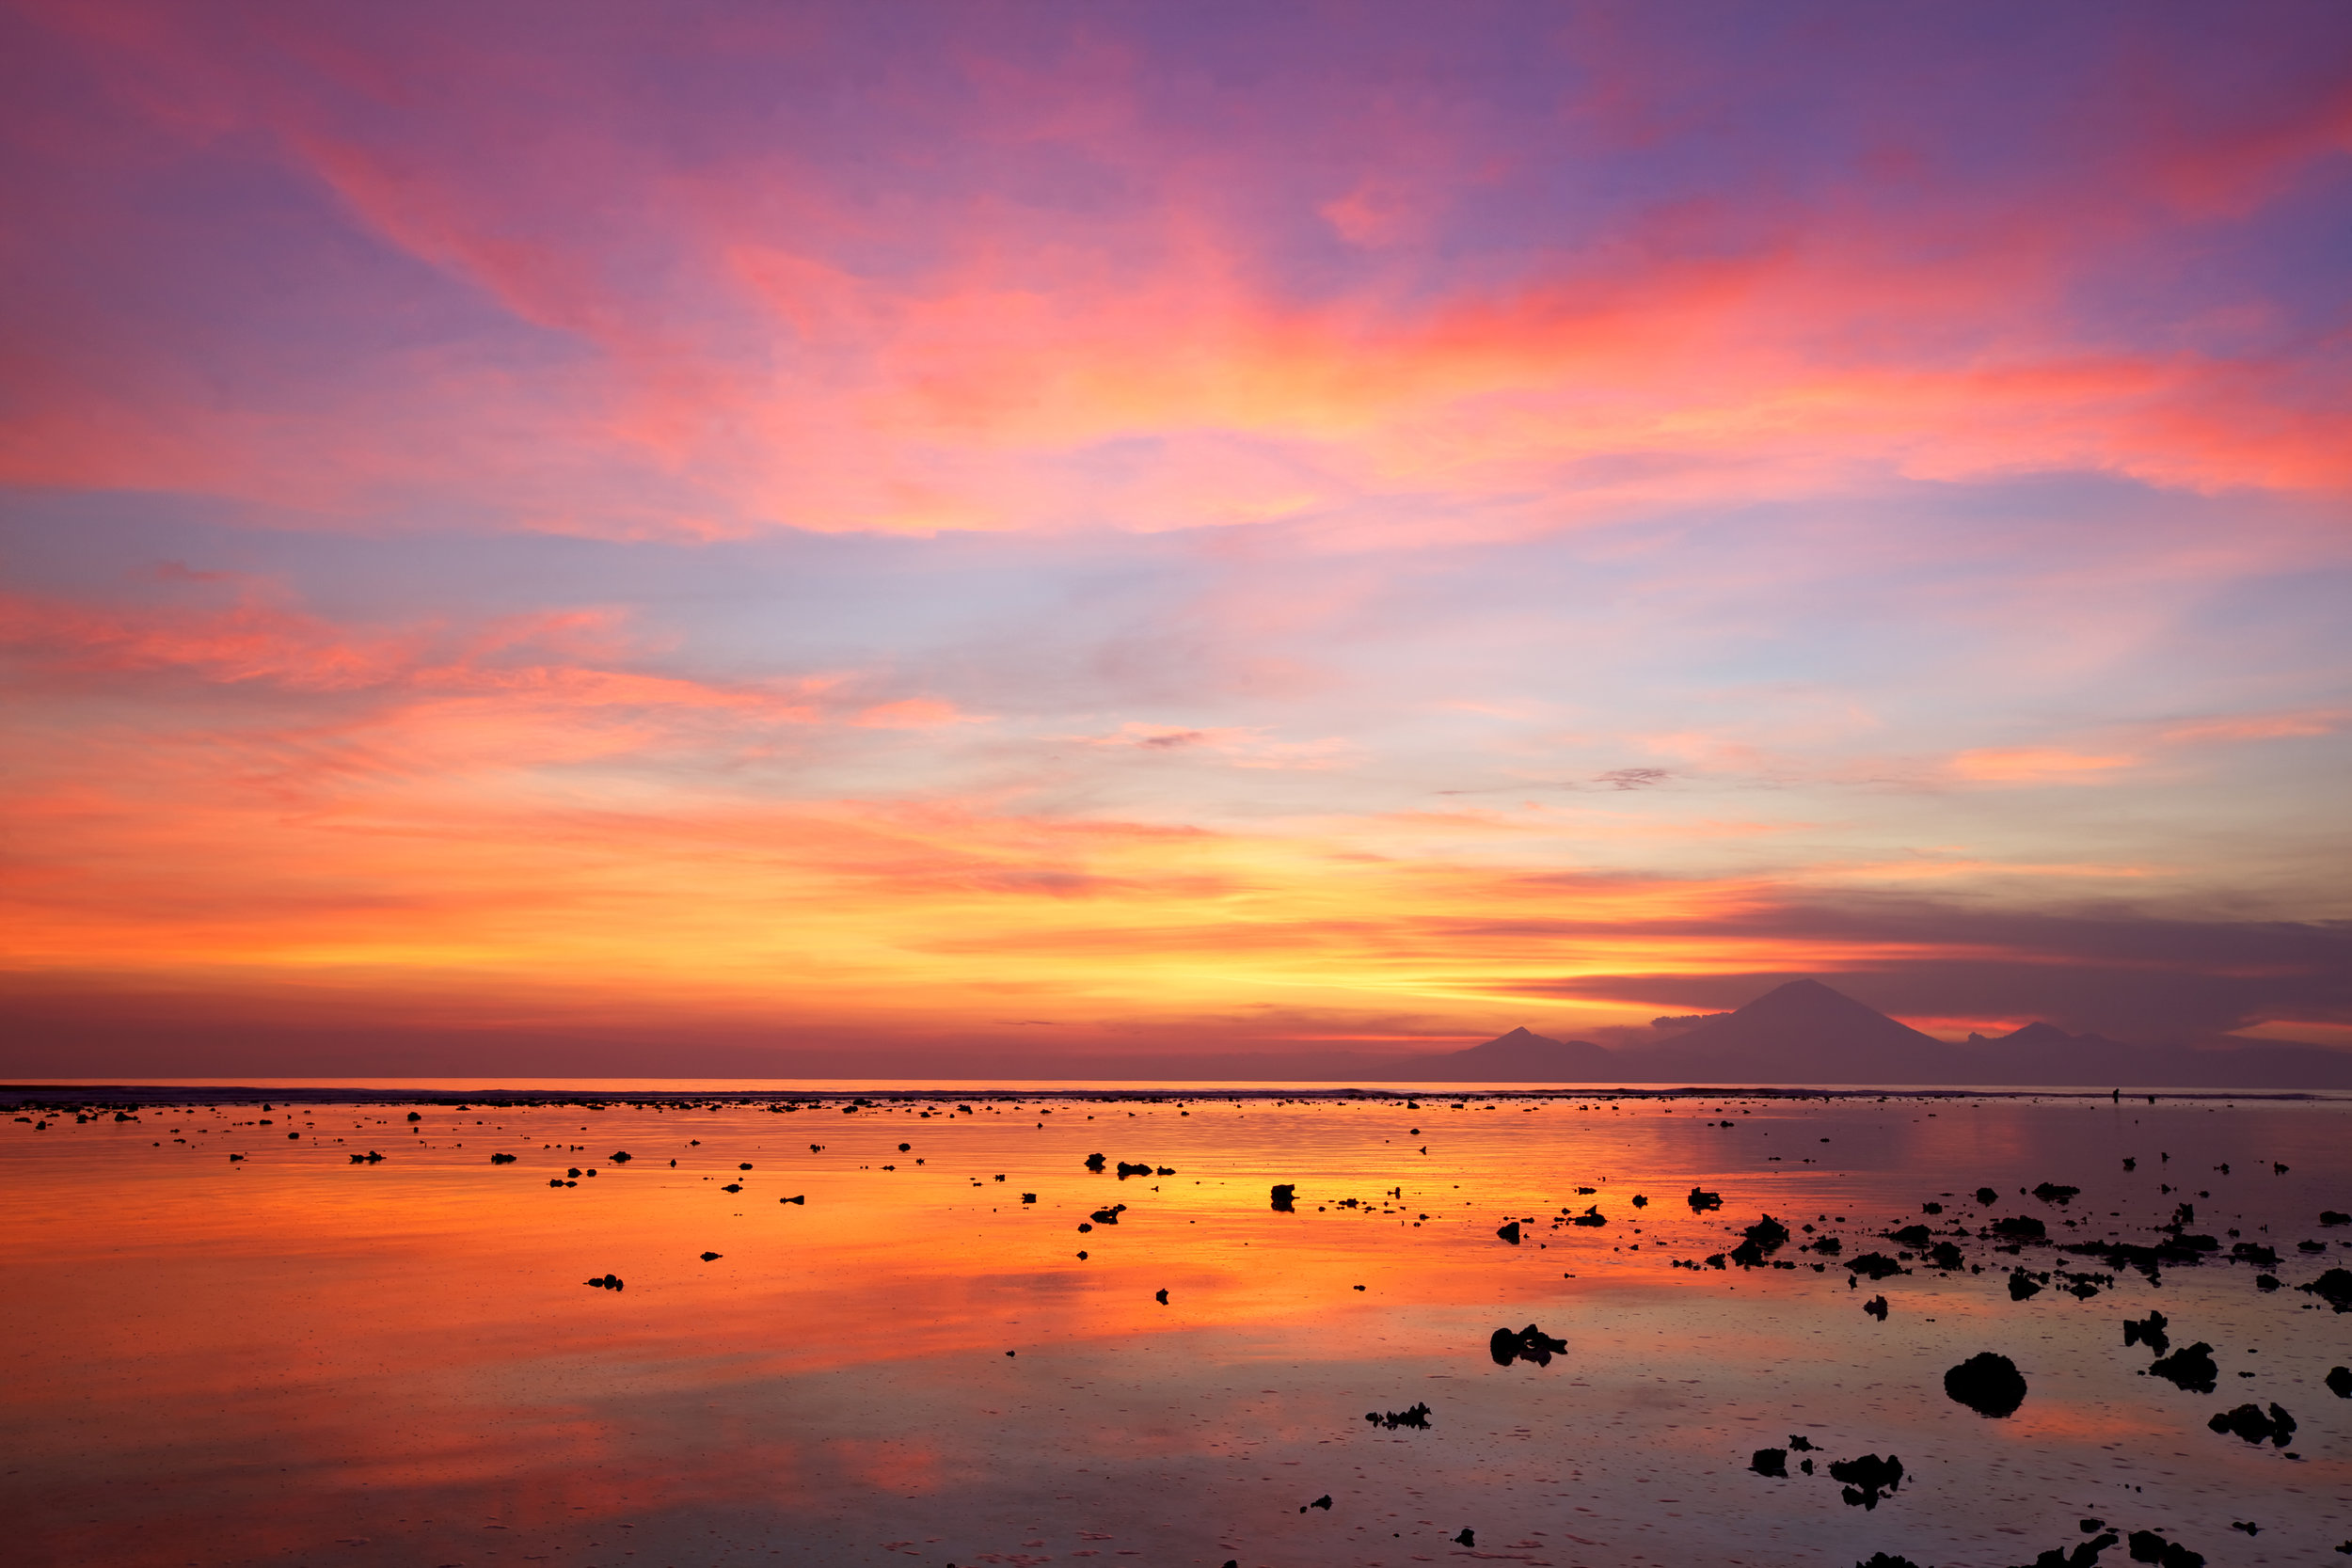 sunset-at-the-coral-beach-P5QUBL8.jpg